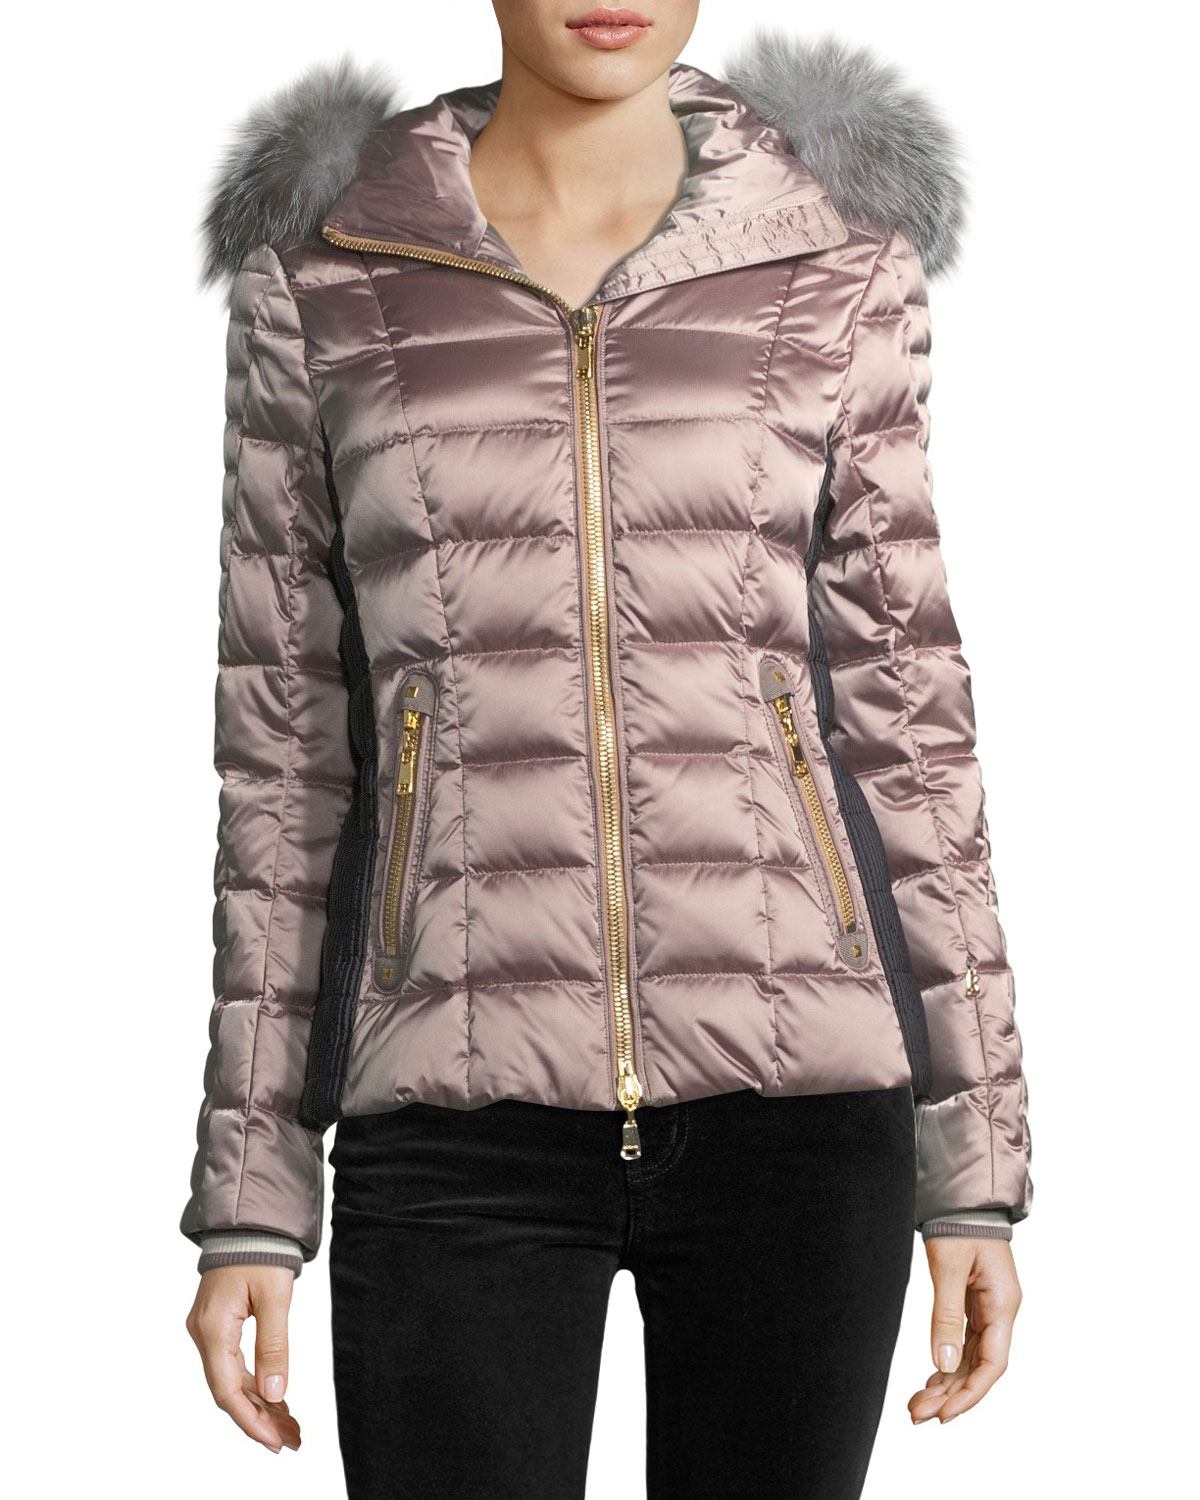 Women's Quilted Jackets & Puffer Coats at Neiman Marcus : quilted puffer coat - Adamdwight.com